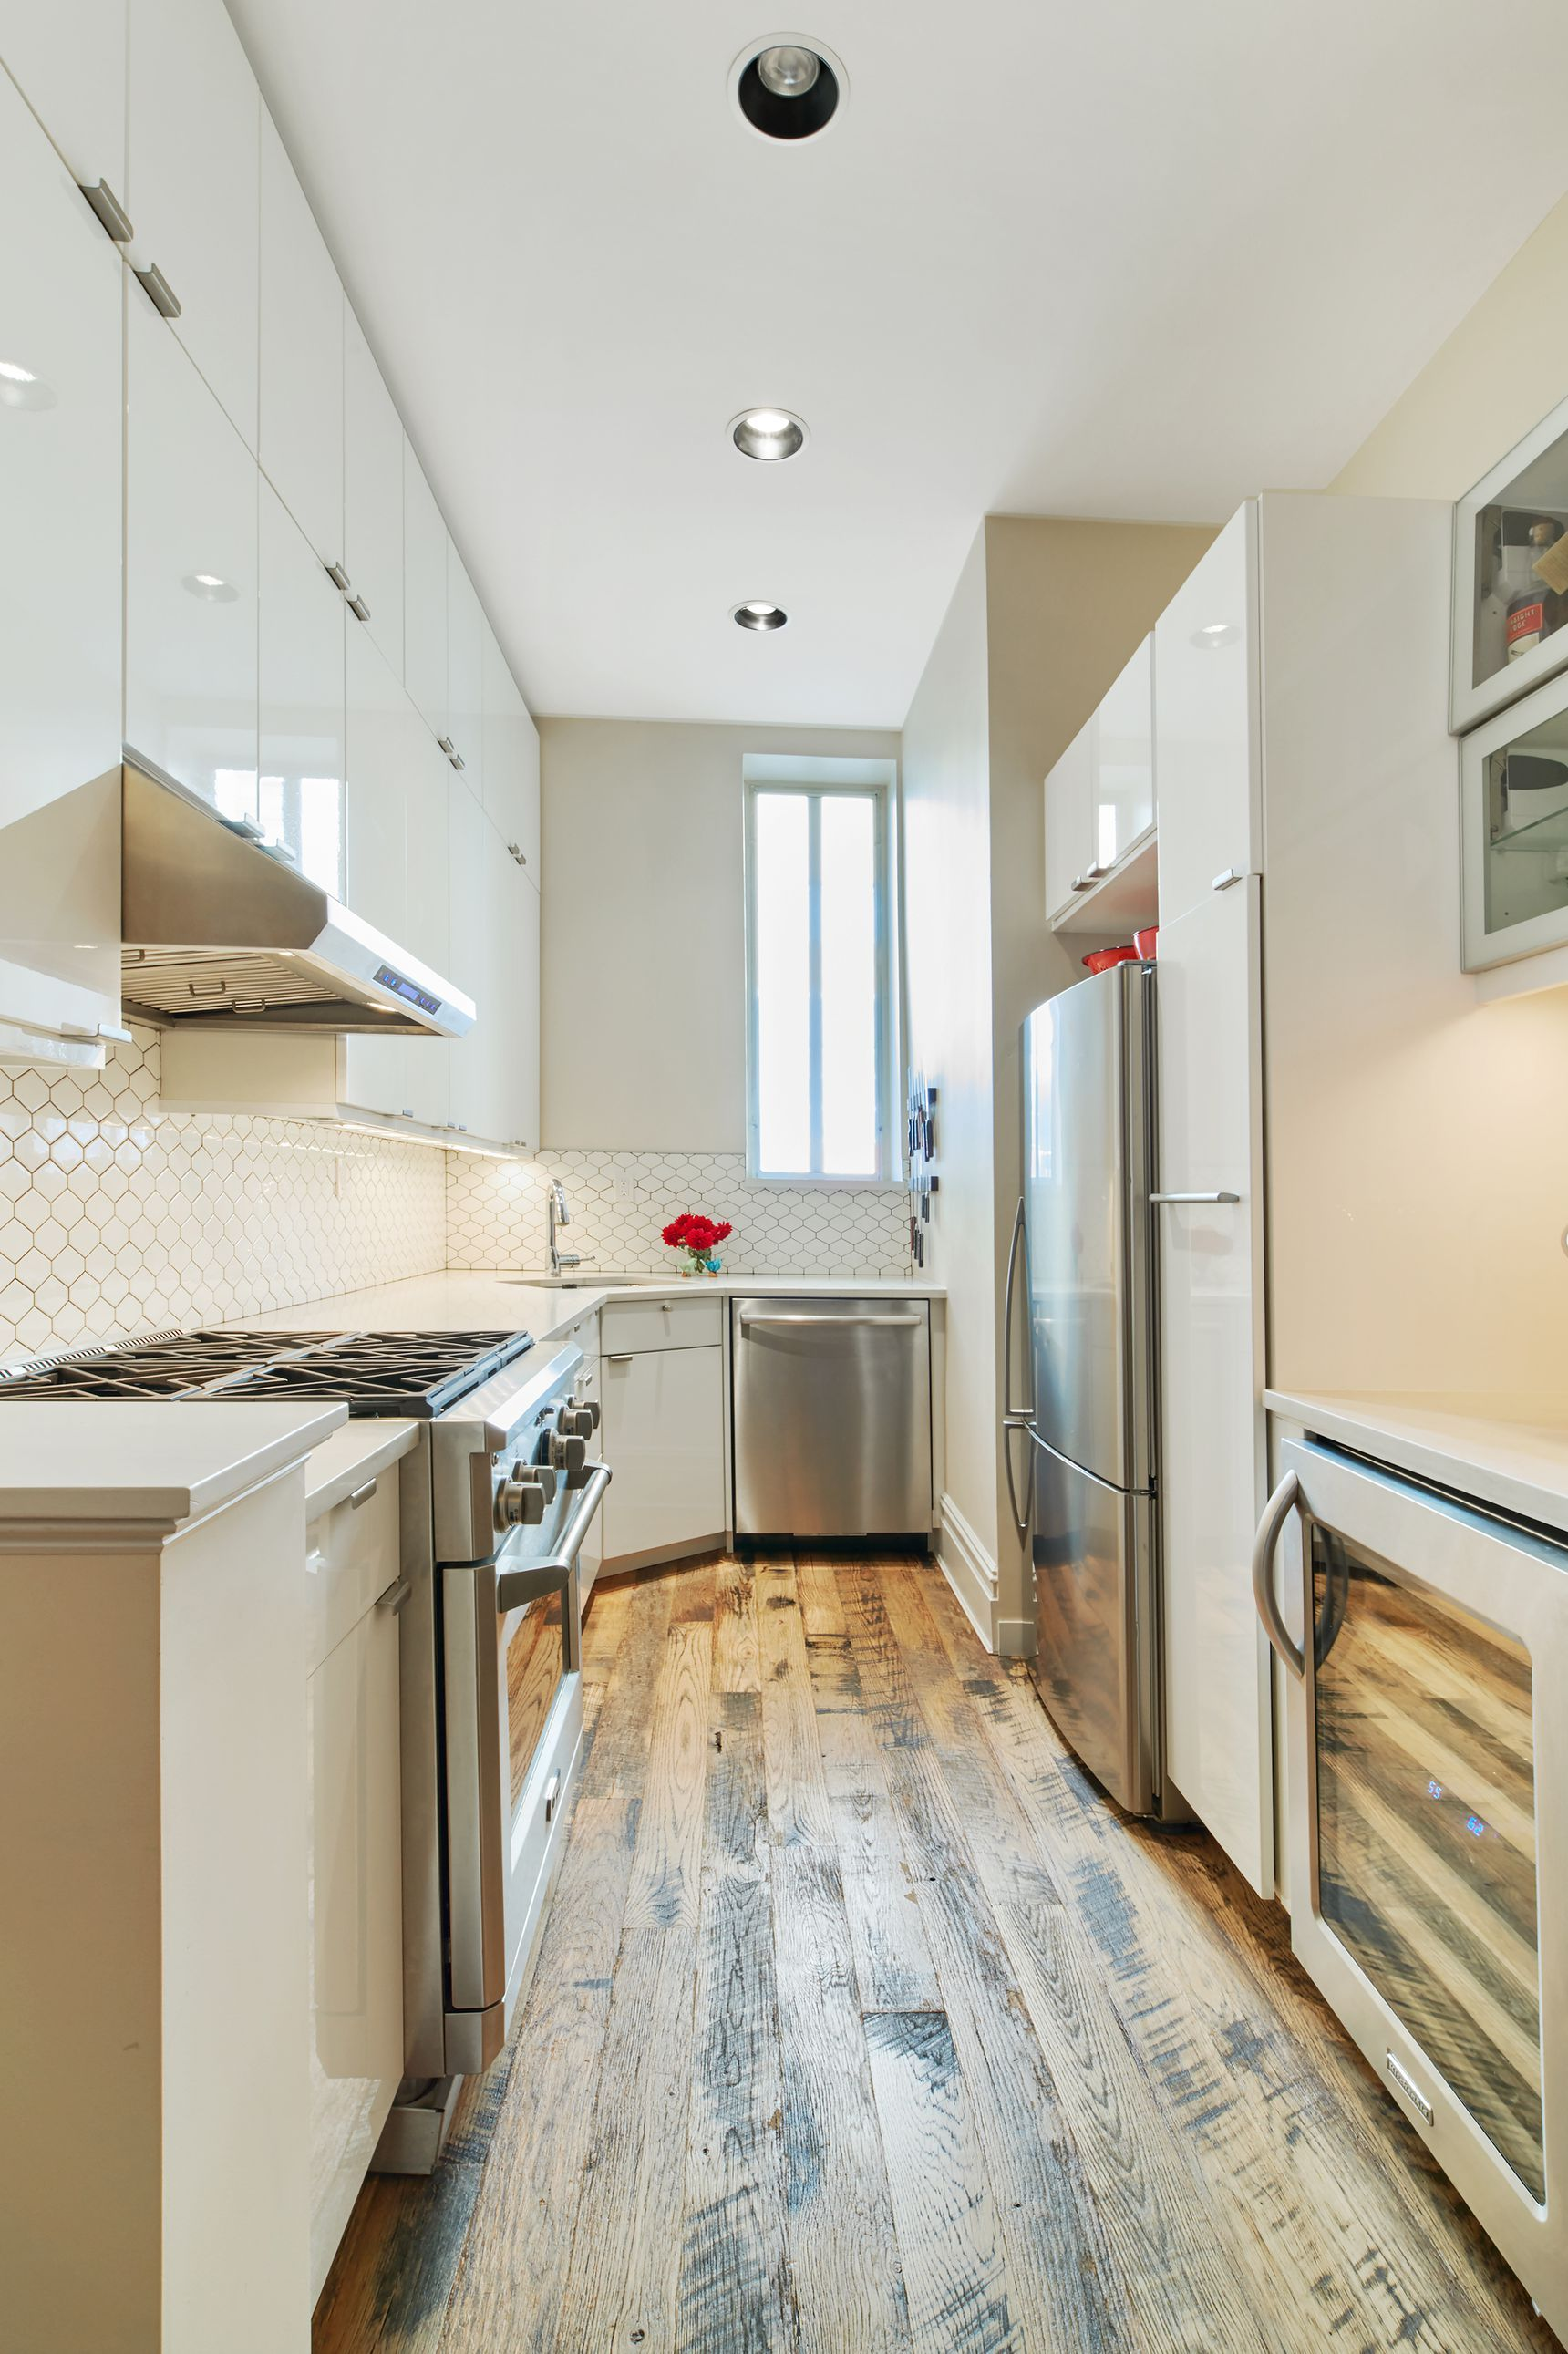 For 1.9M, a stunning duplex in a converted Brooklyn